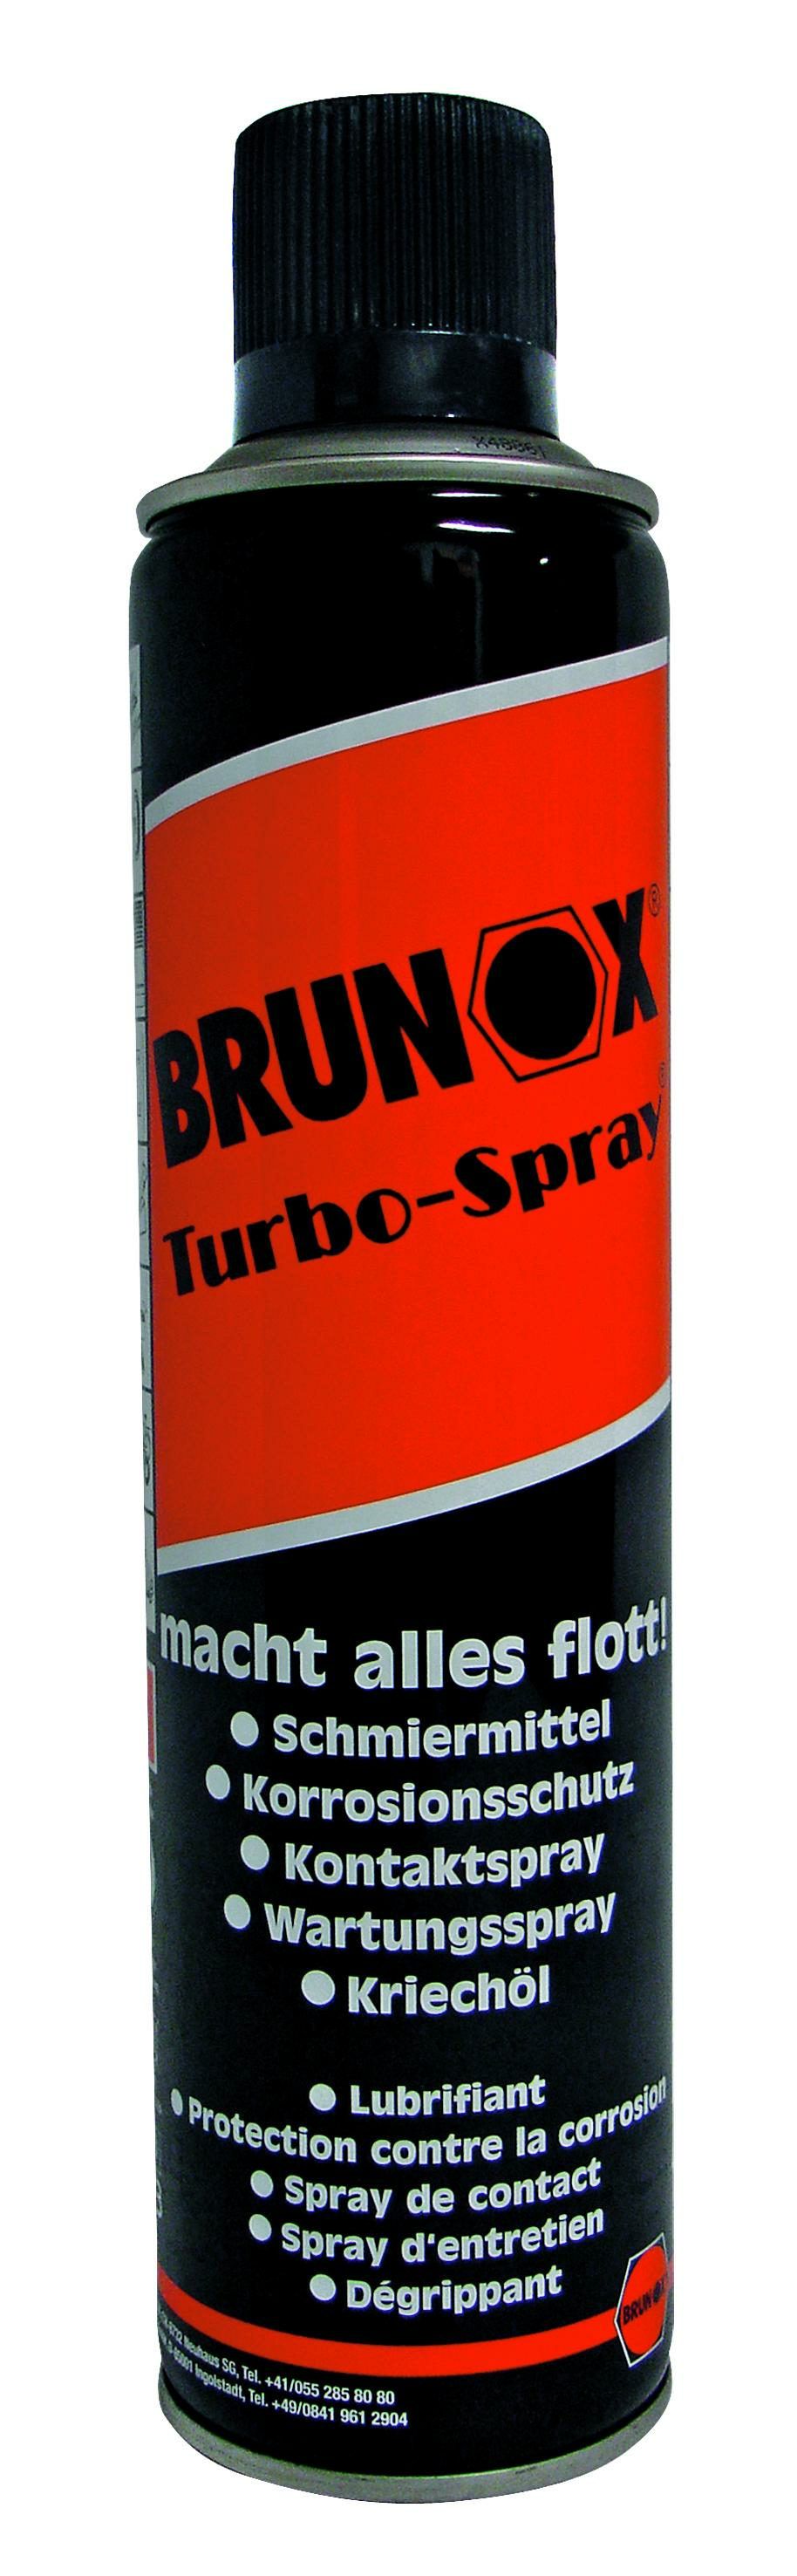 Brunox® Turbo-Spray 400ml